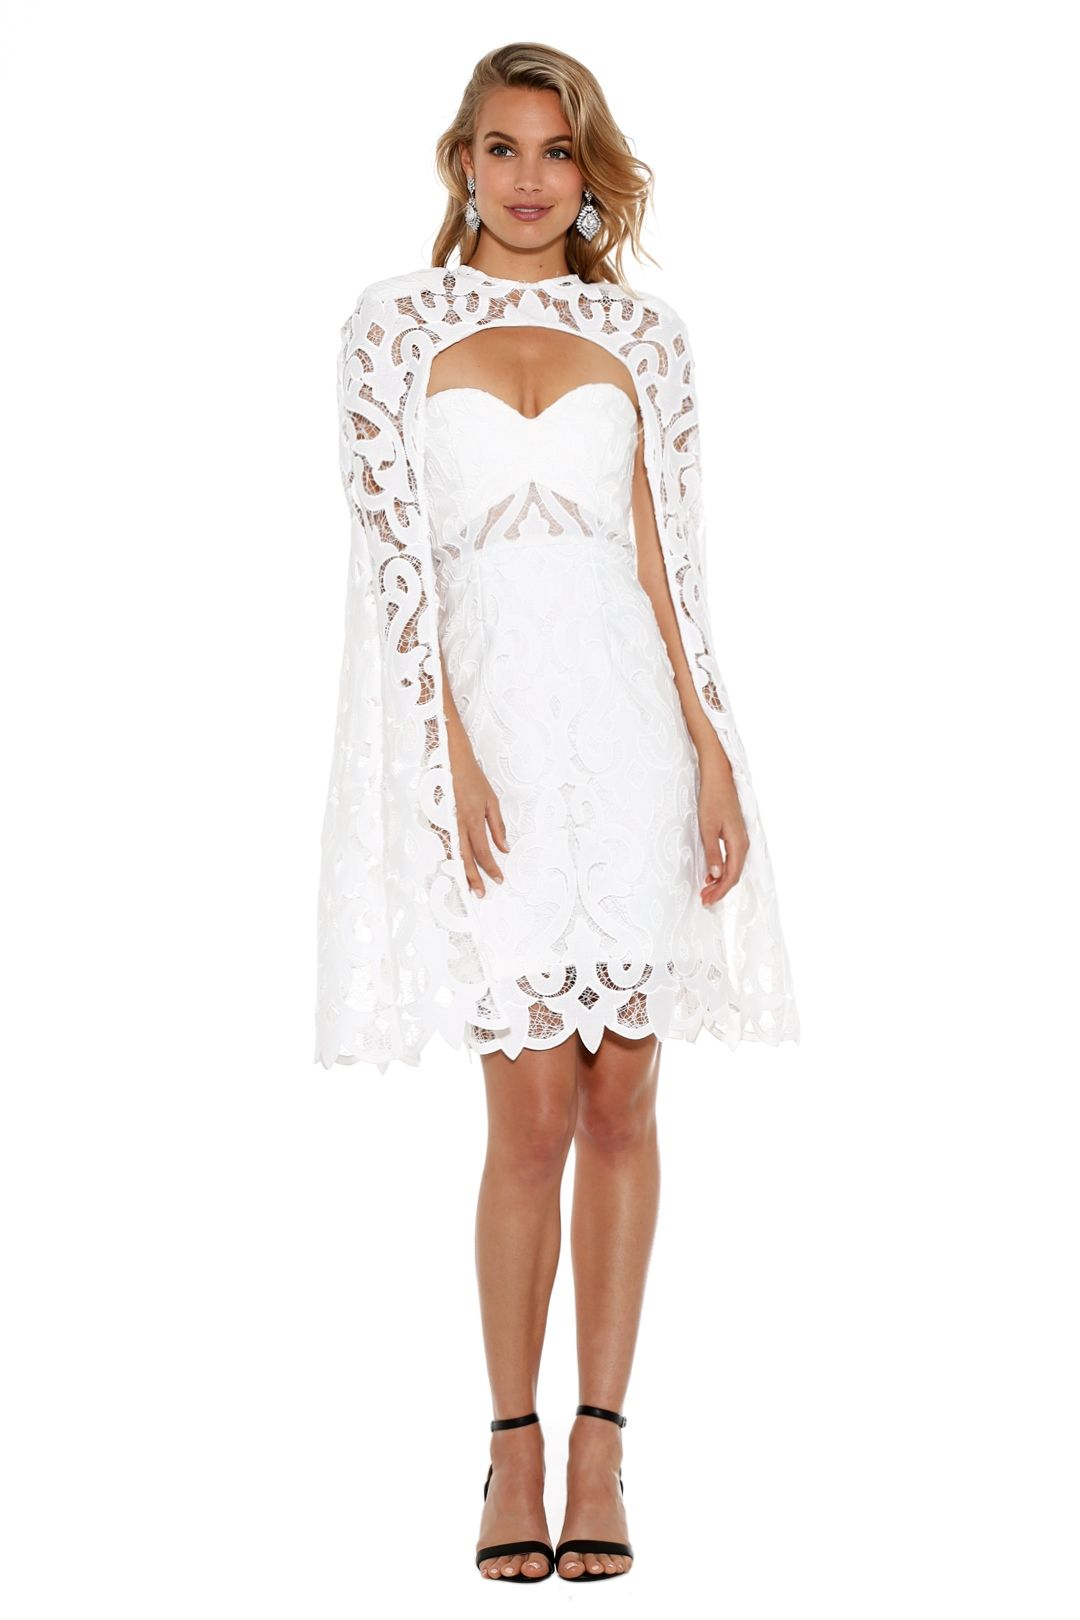 Thurley - Khalessi Cape Dress - White - Front